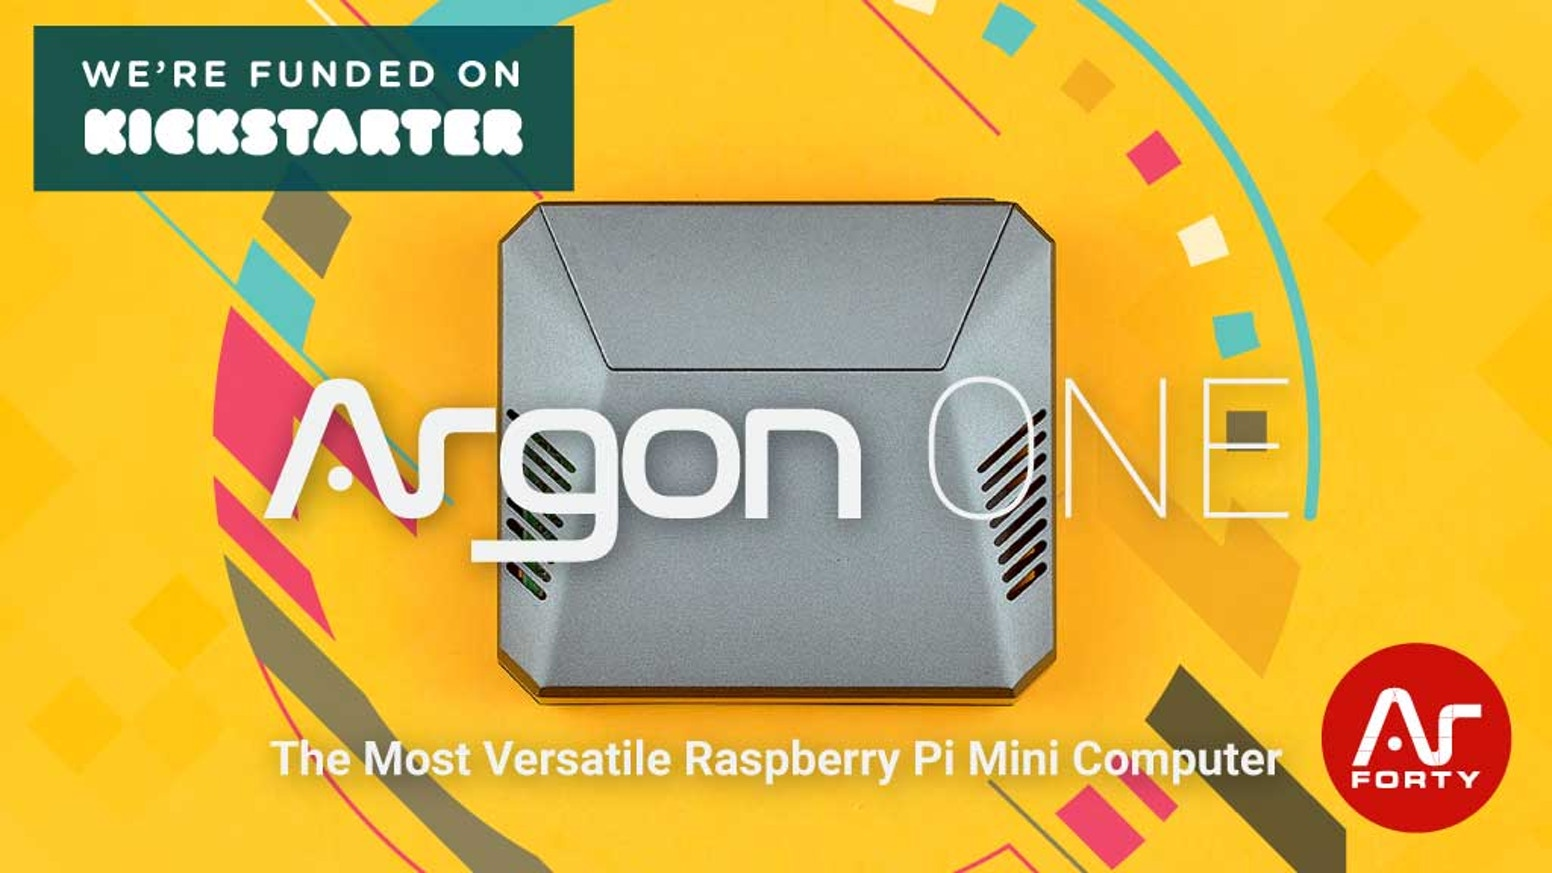 ARGON One: The Most Versatile Raspberry Pi Mini Computer by Argon